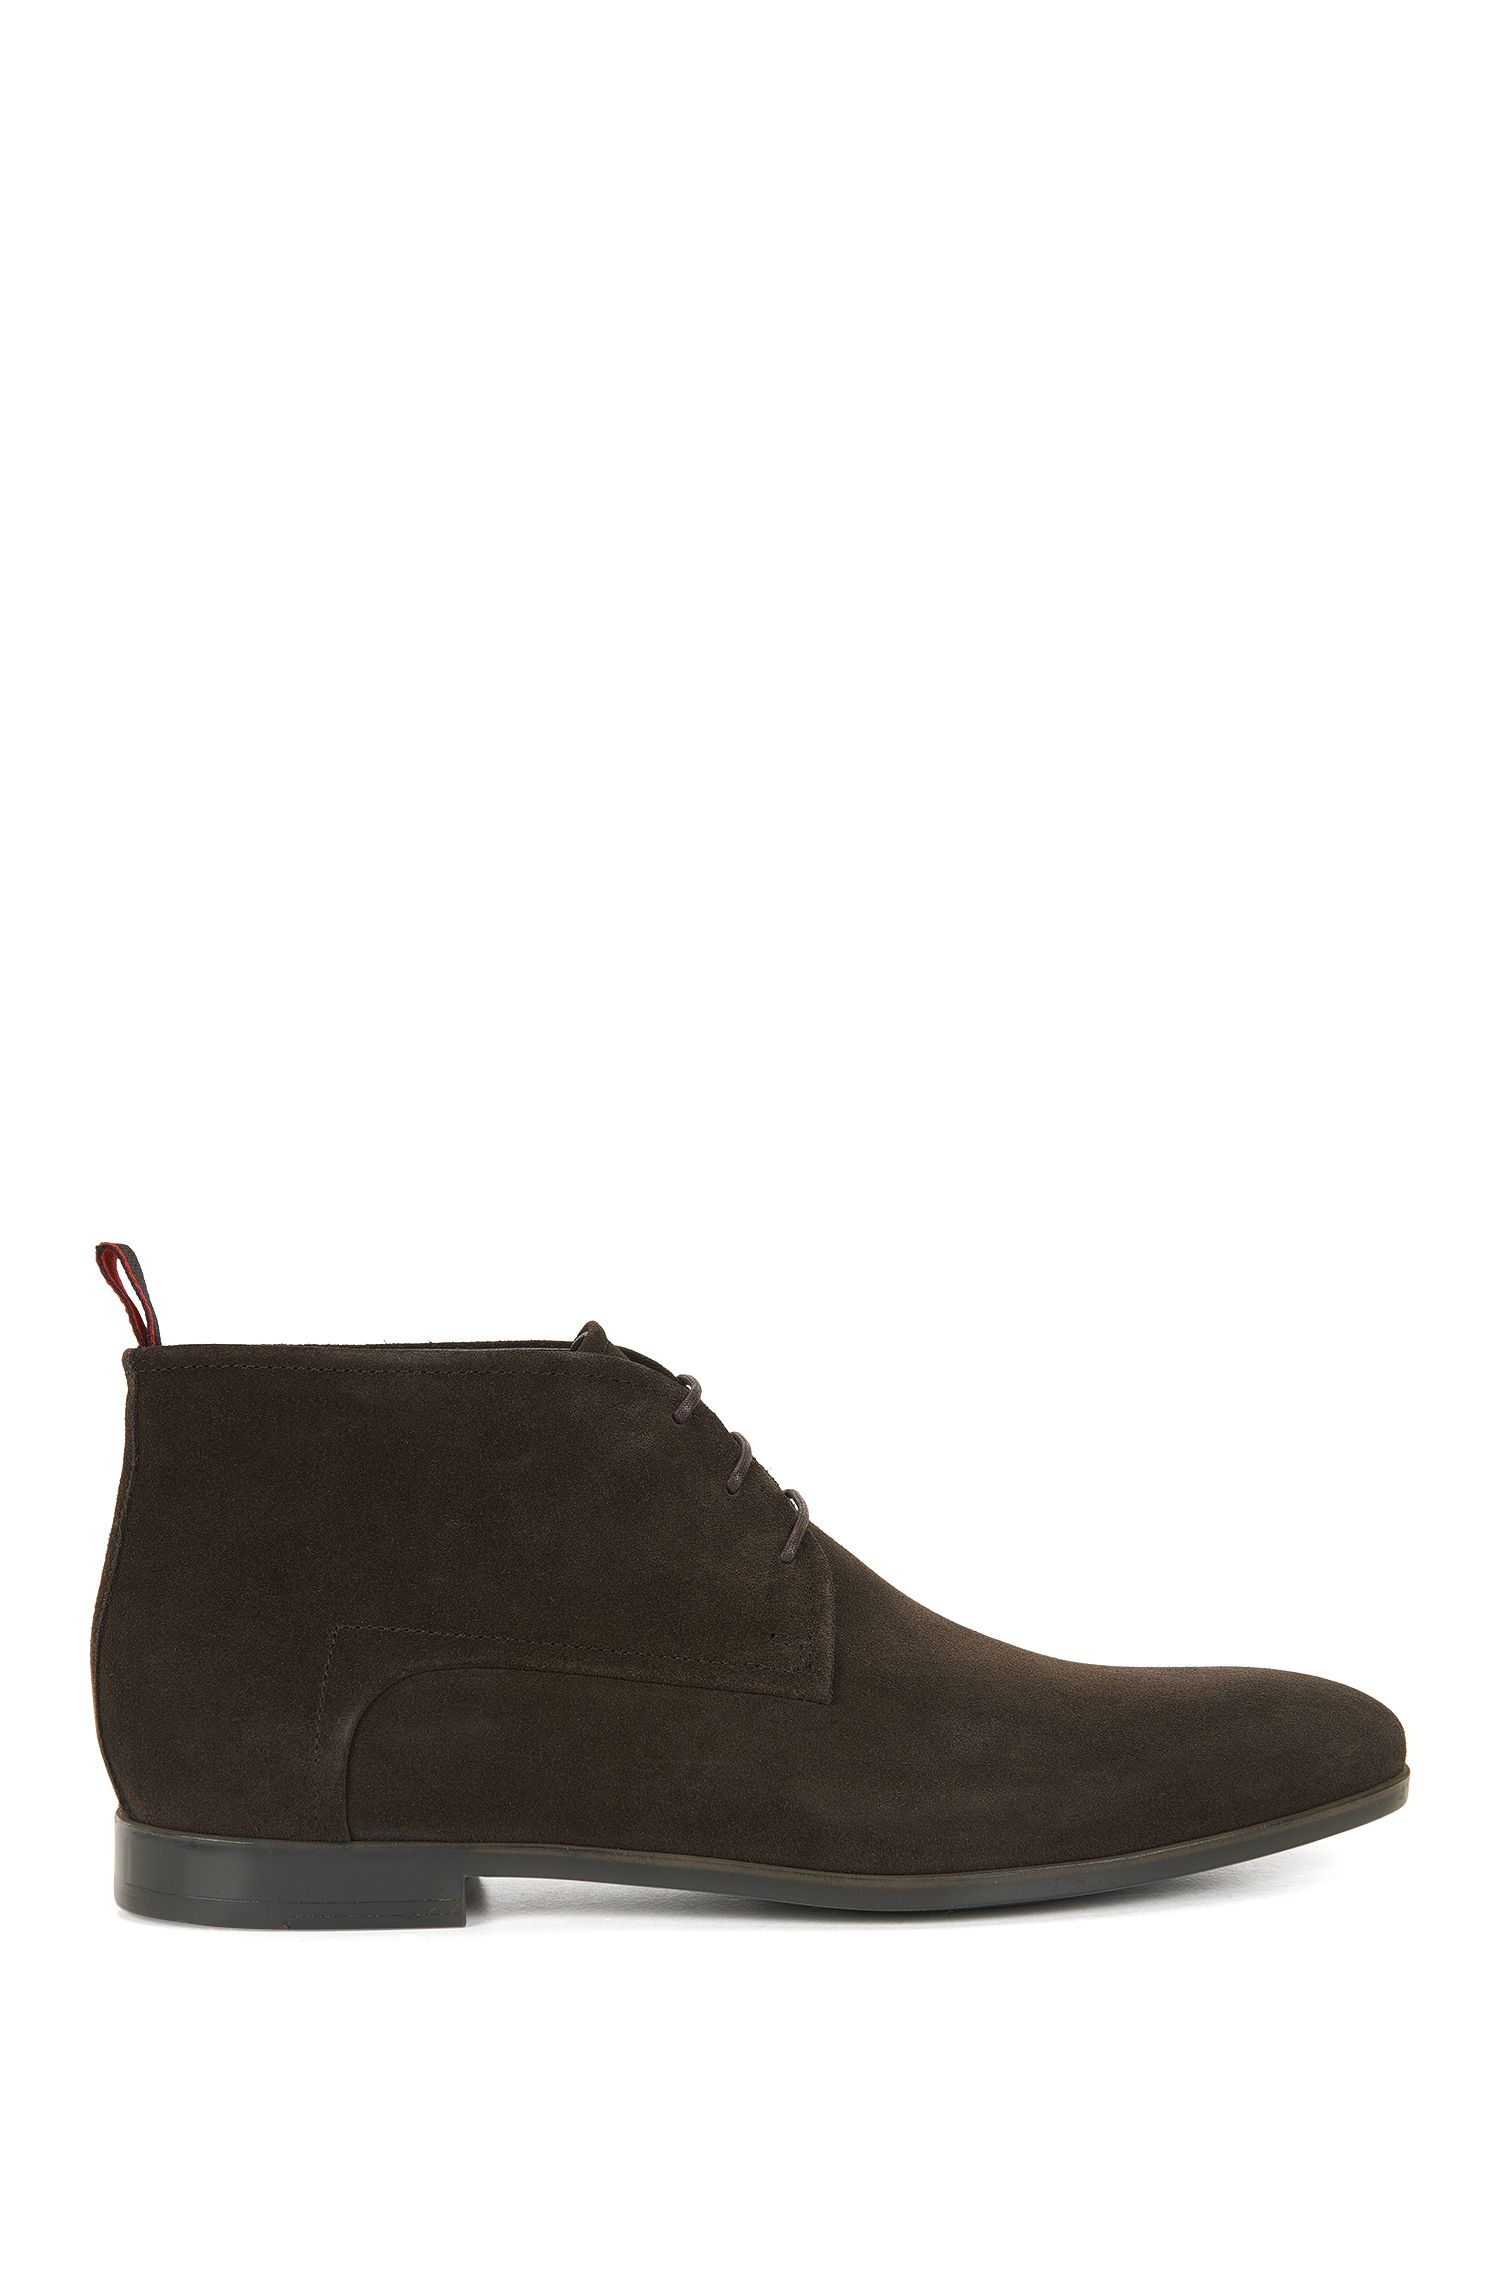 Suede desert boots with leather lining